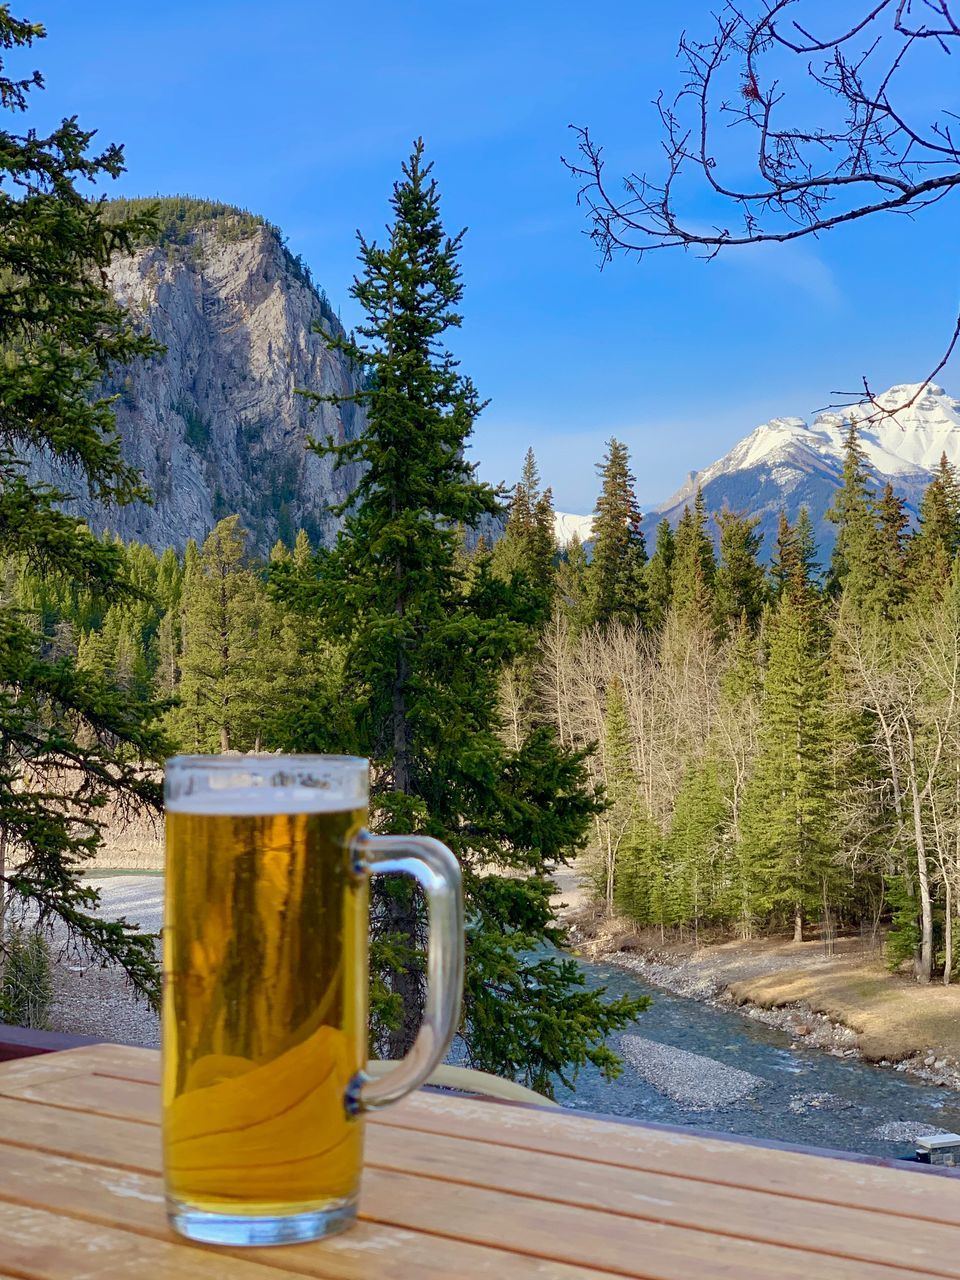 BEER GLASS ON TABLE AGAINST MOUNTAINS